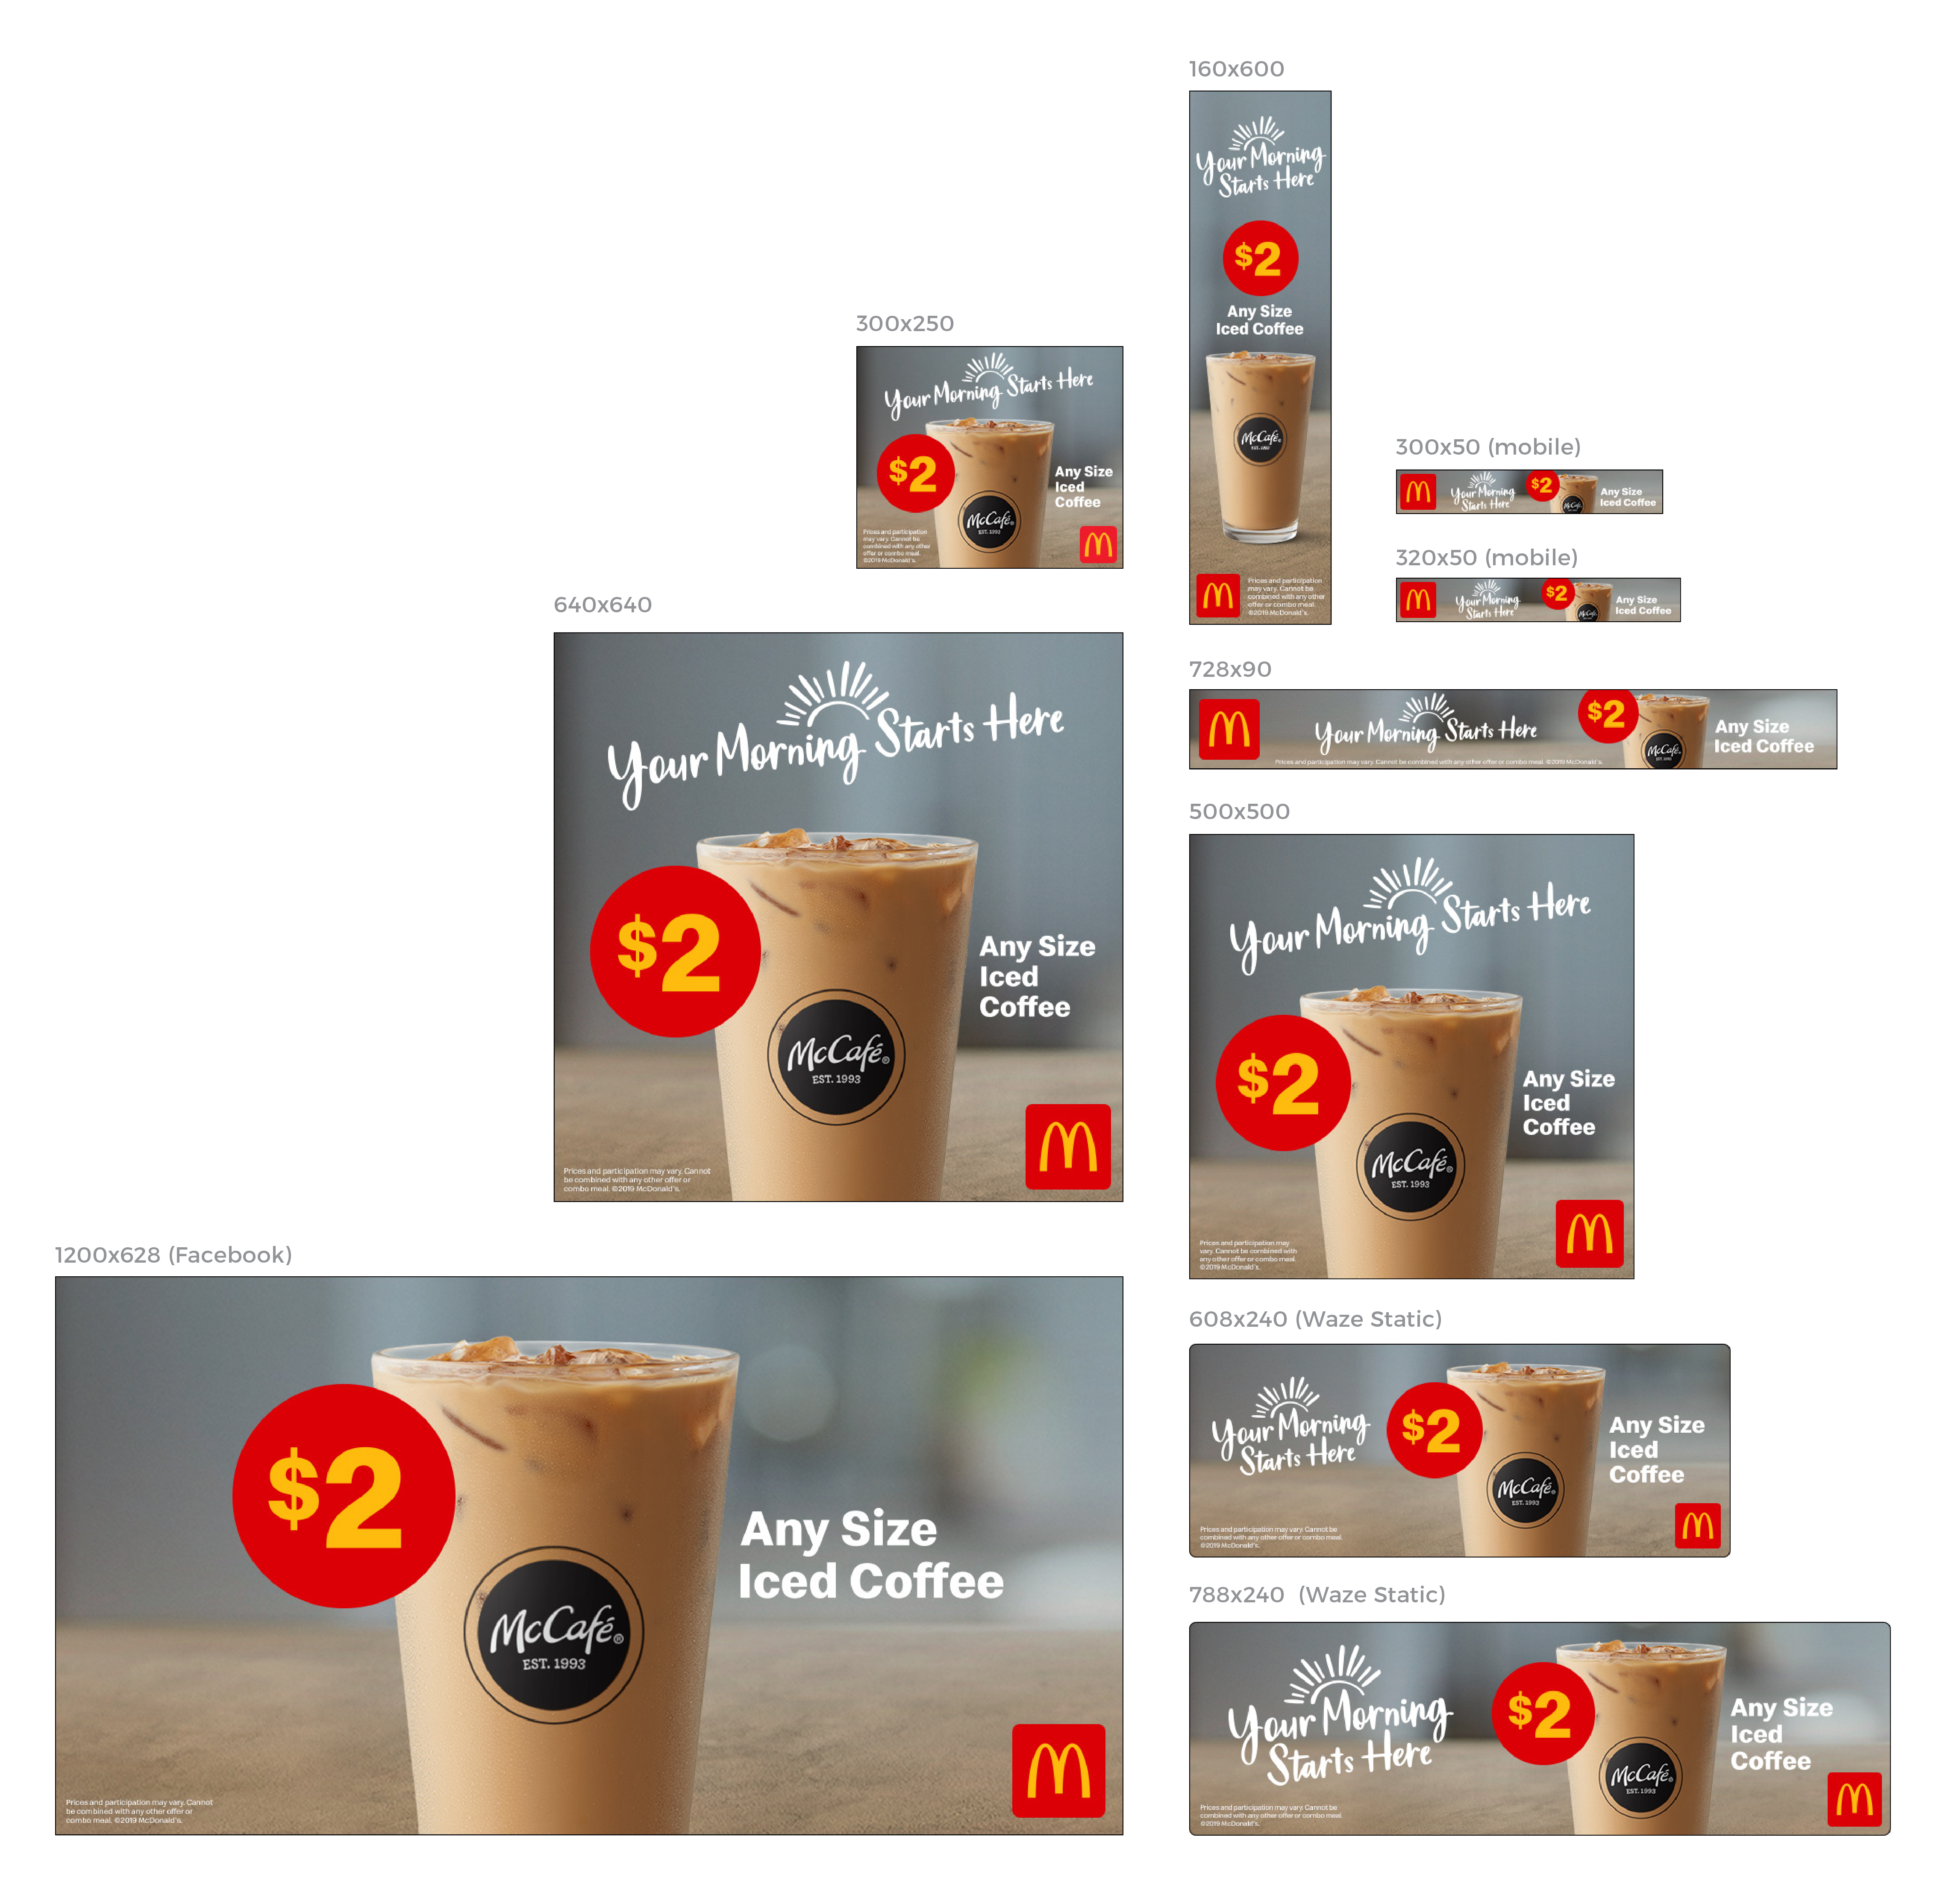 McCafe Iced Coffee Digital Advertising Campaign - Featured in the San Francisco Region for the Hispanic Consumer Market (HCM)